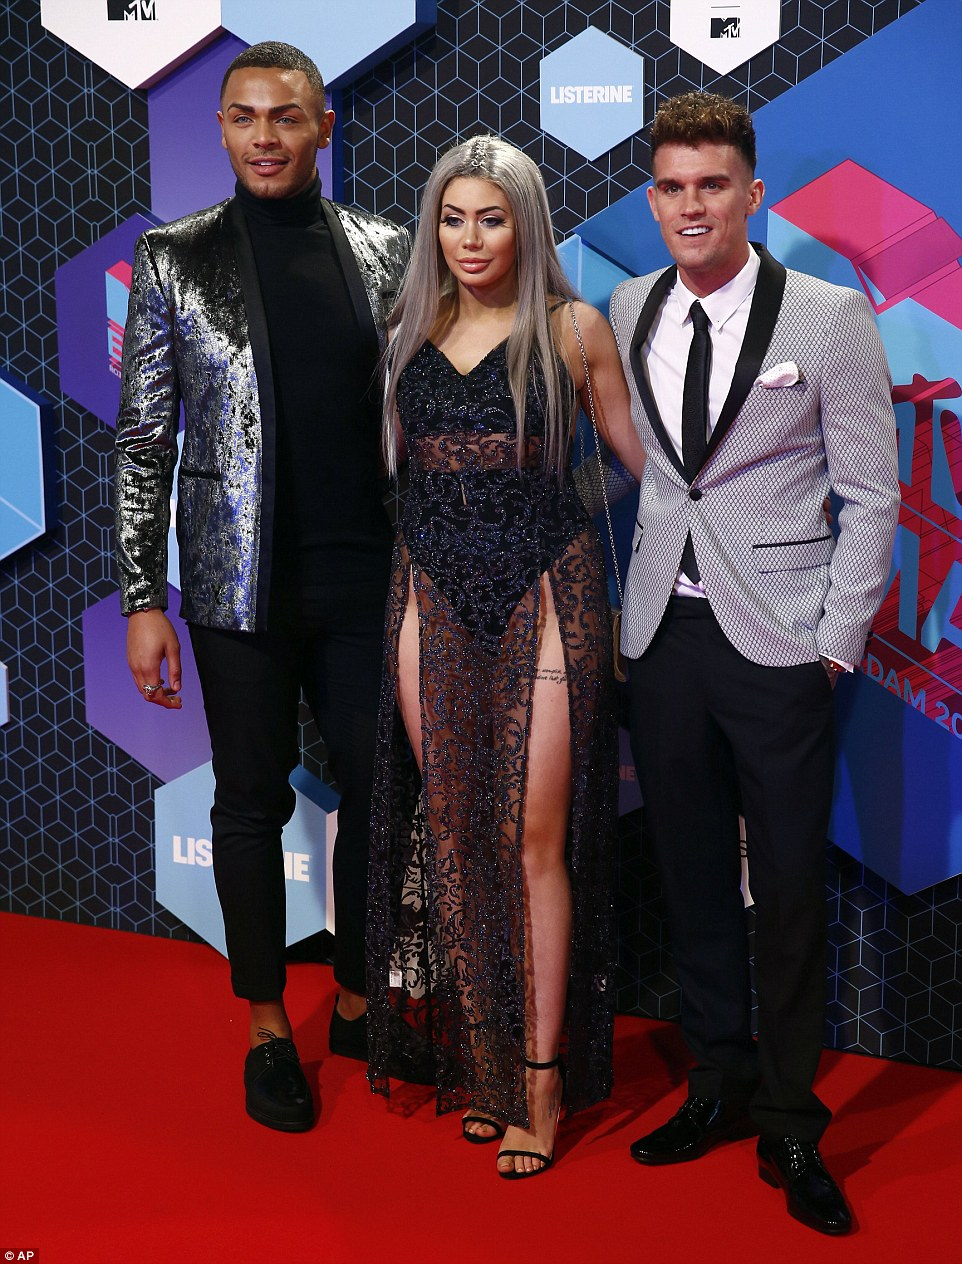 Geordie Shore take Rotterdam! Nathan Henry, Chloe and Gary all posed on the carpet together